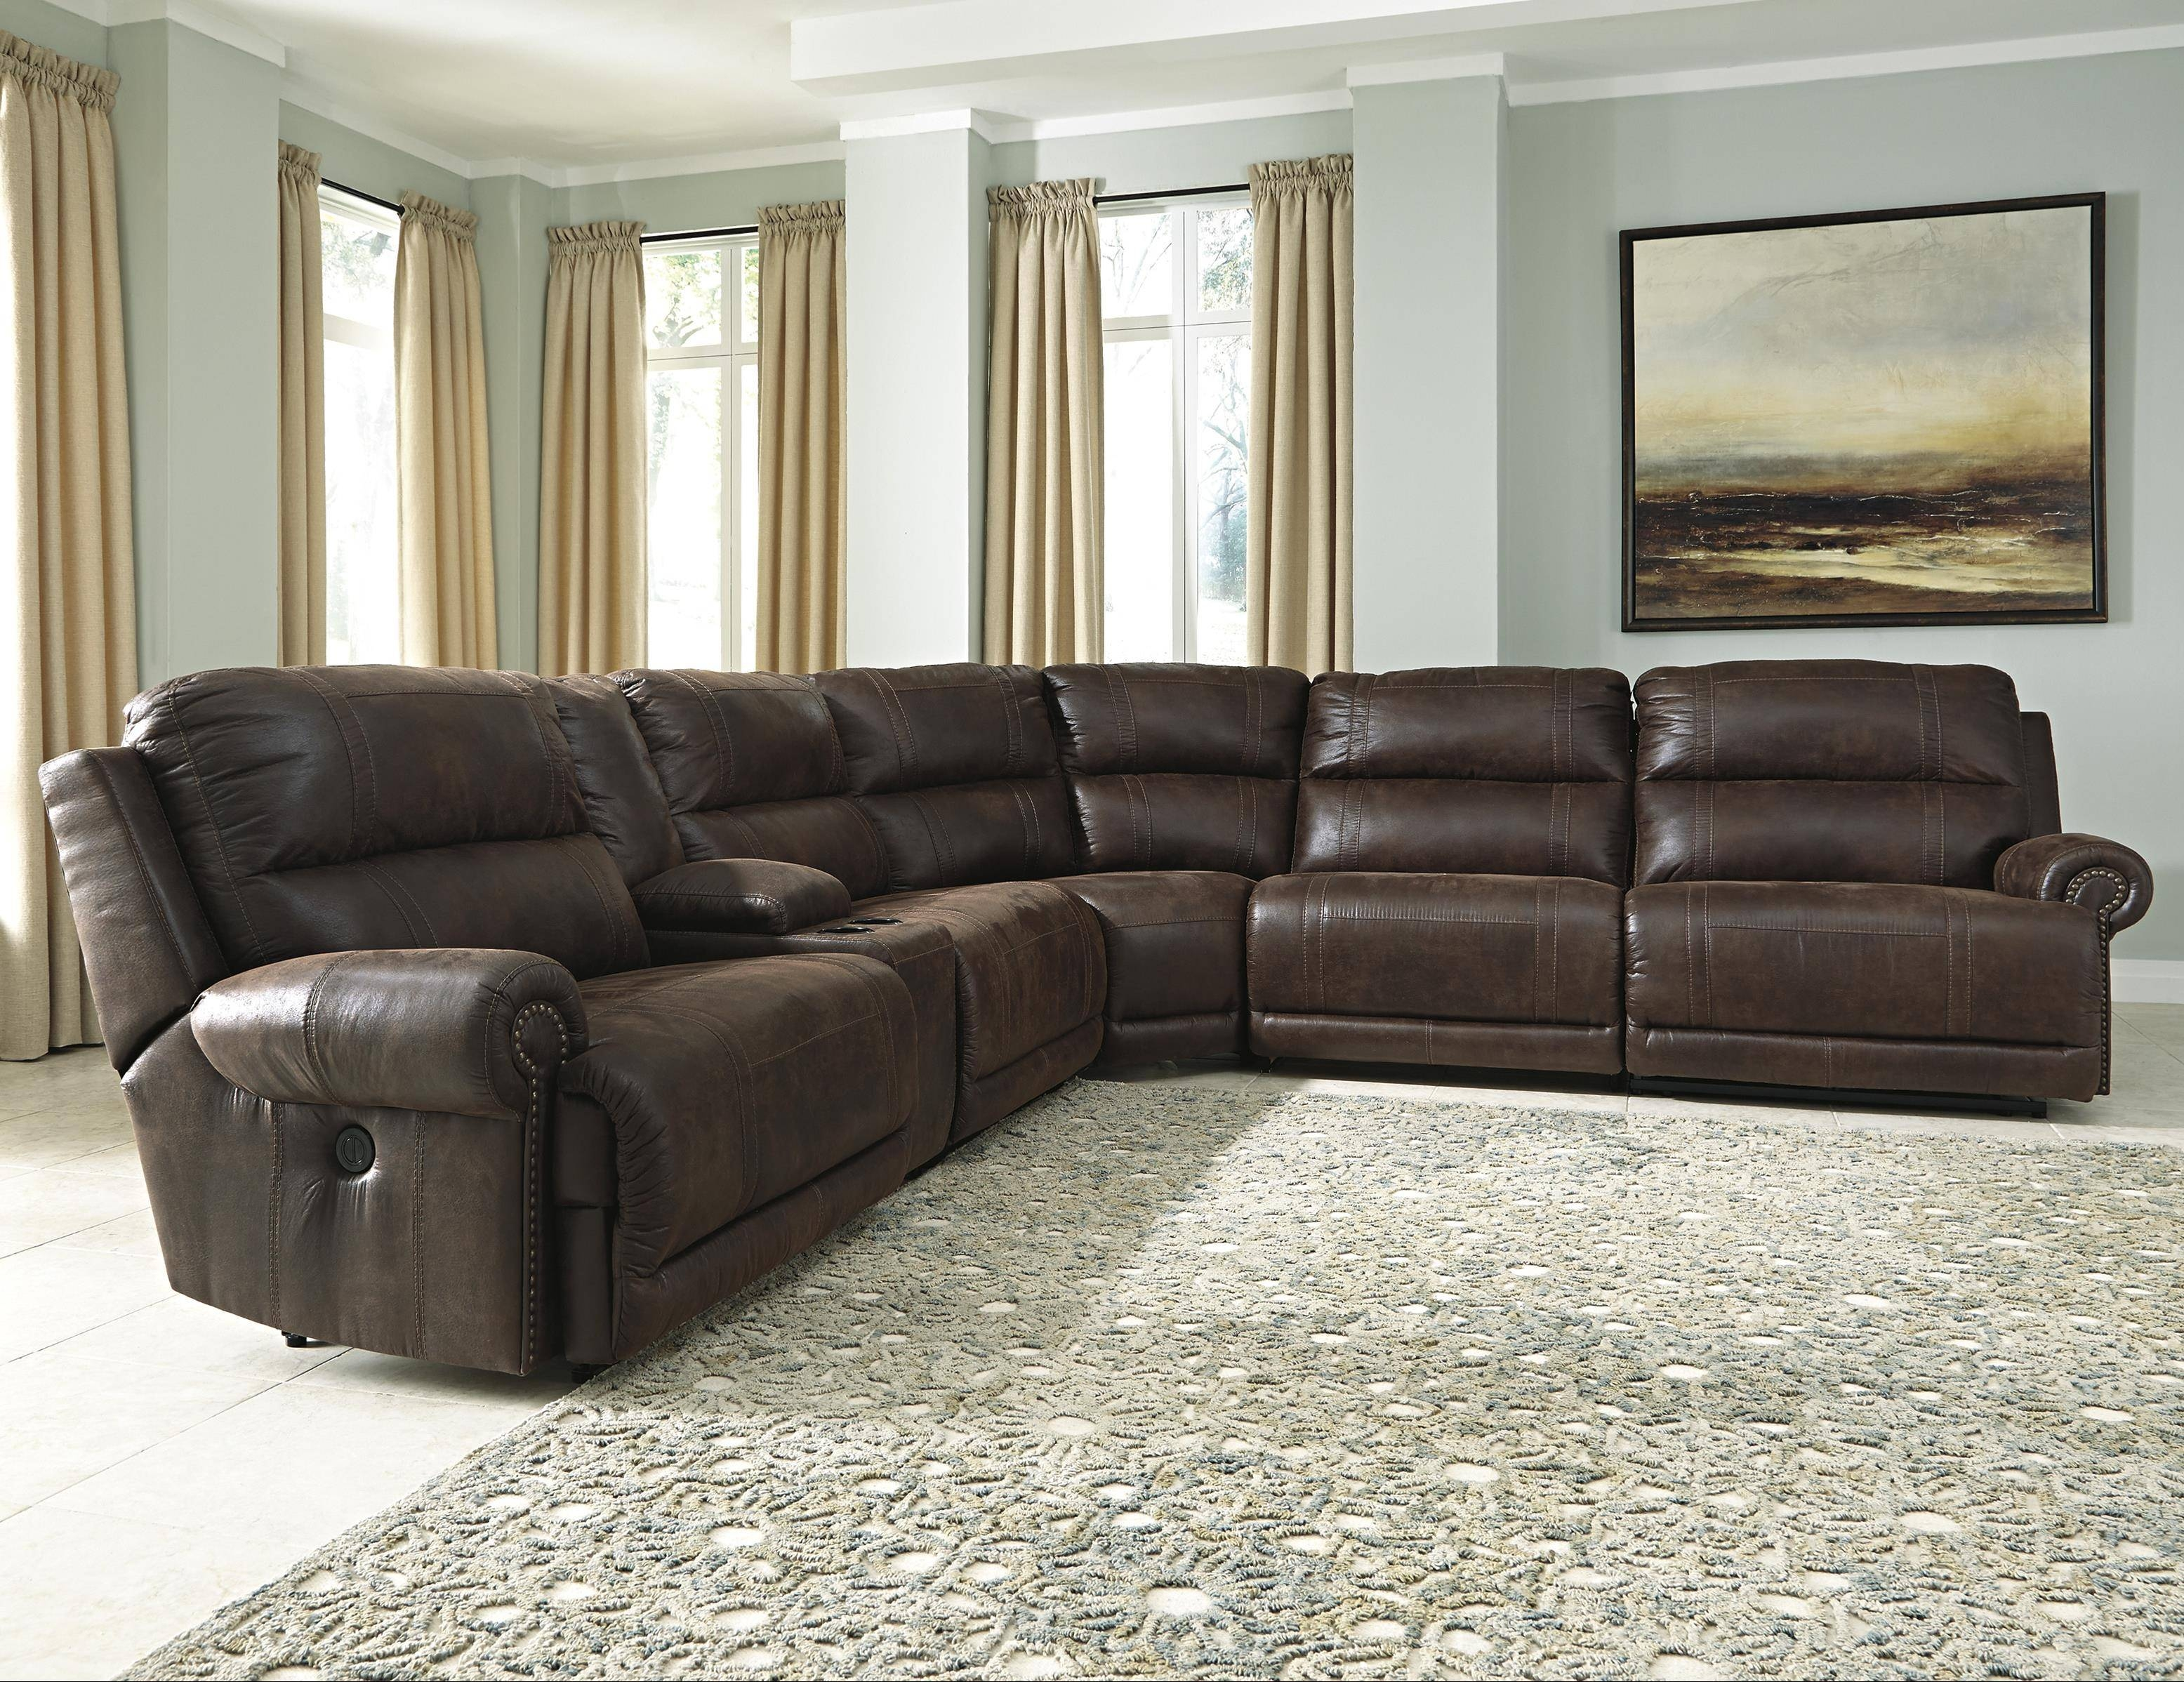 Signature Designashley Luttrell 6-Piece Reclining Sectional pertaining to 6 Piece Sectional Sofas Couches (Image 14 of 15)